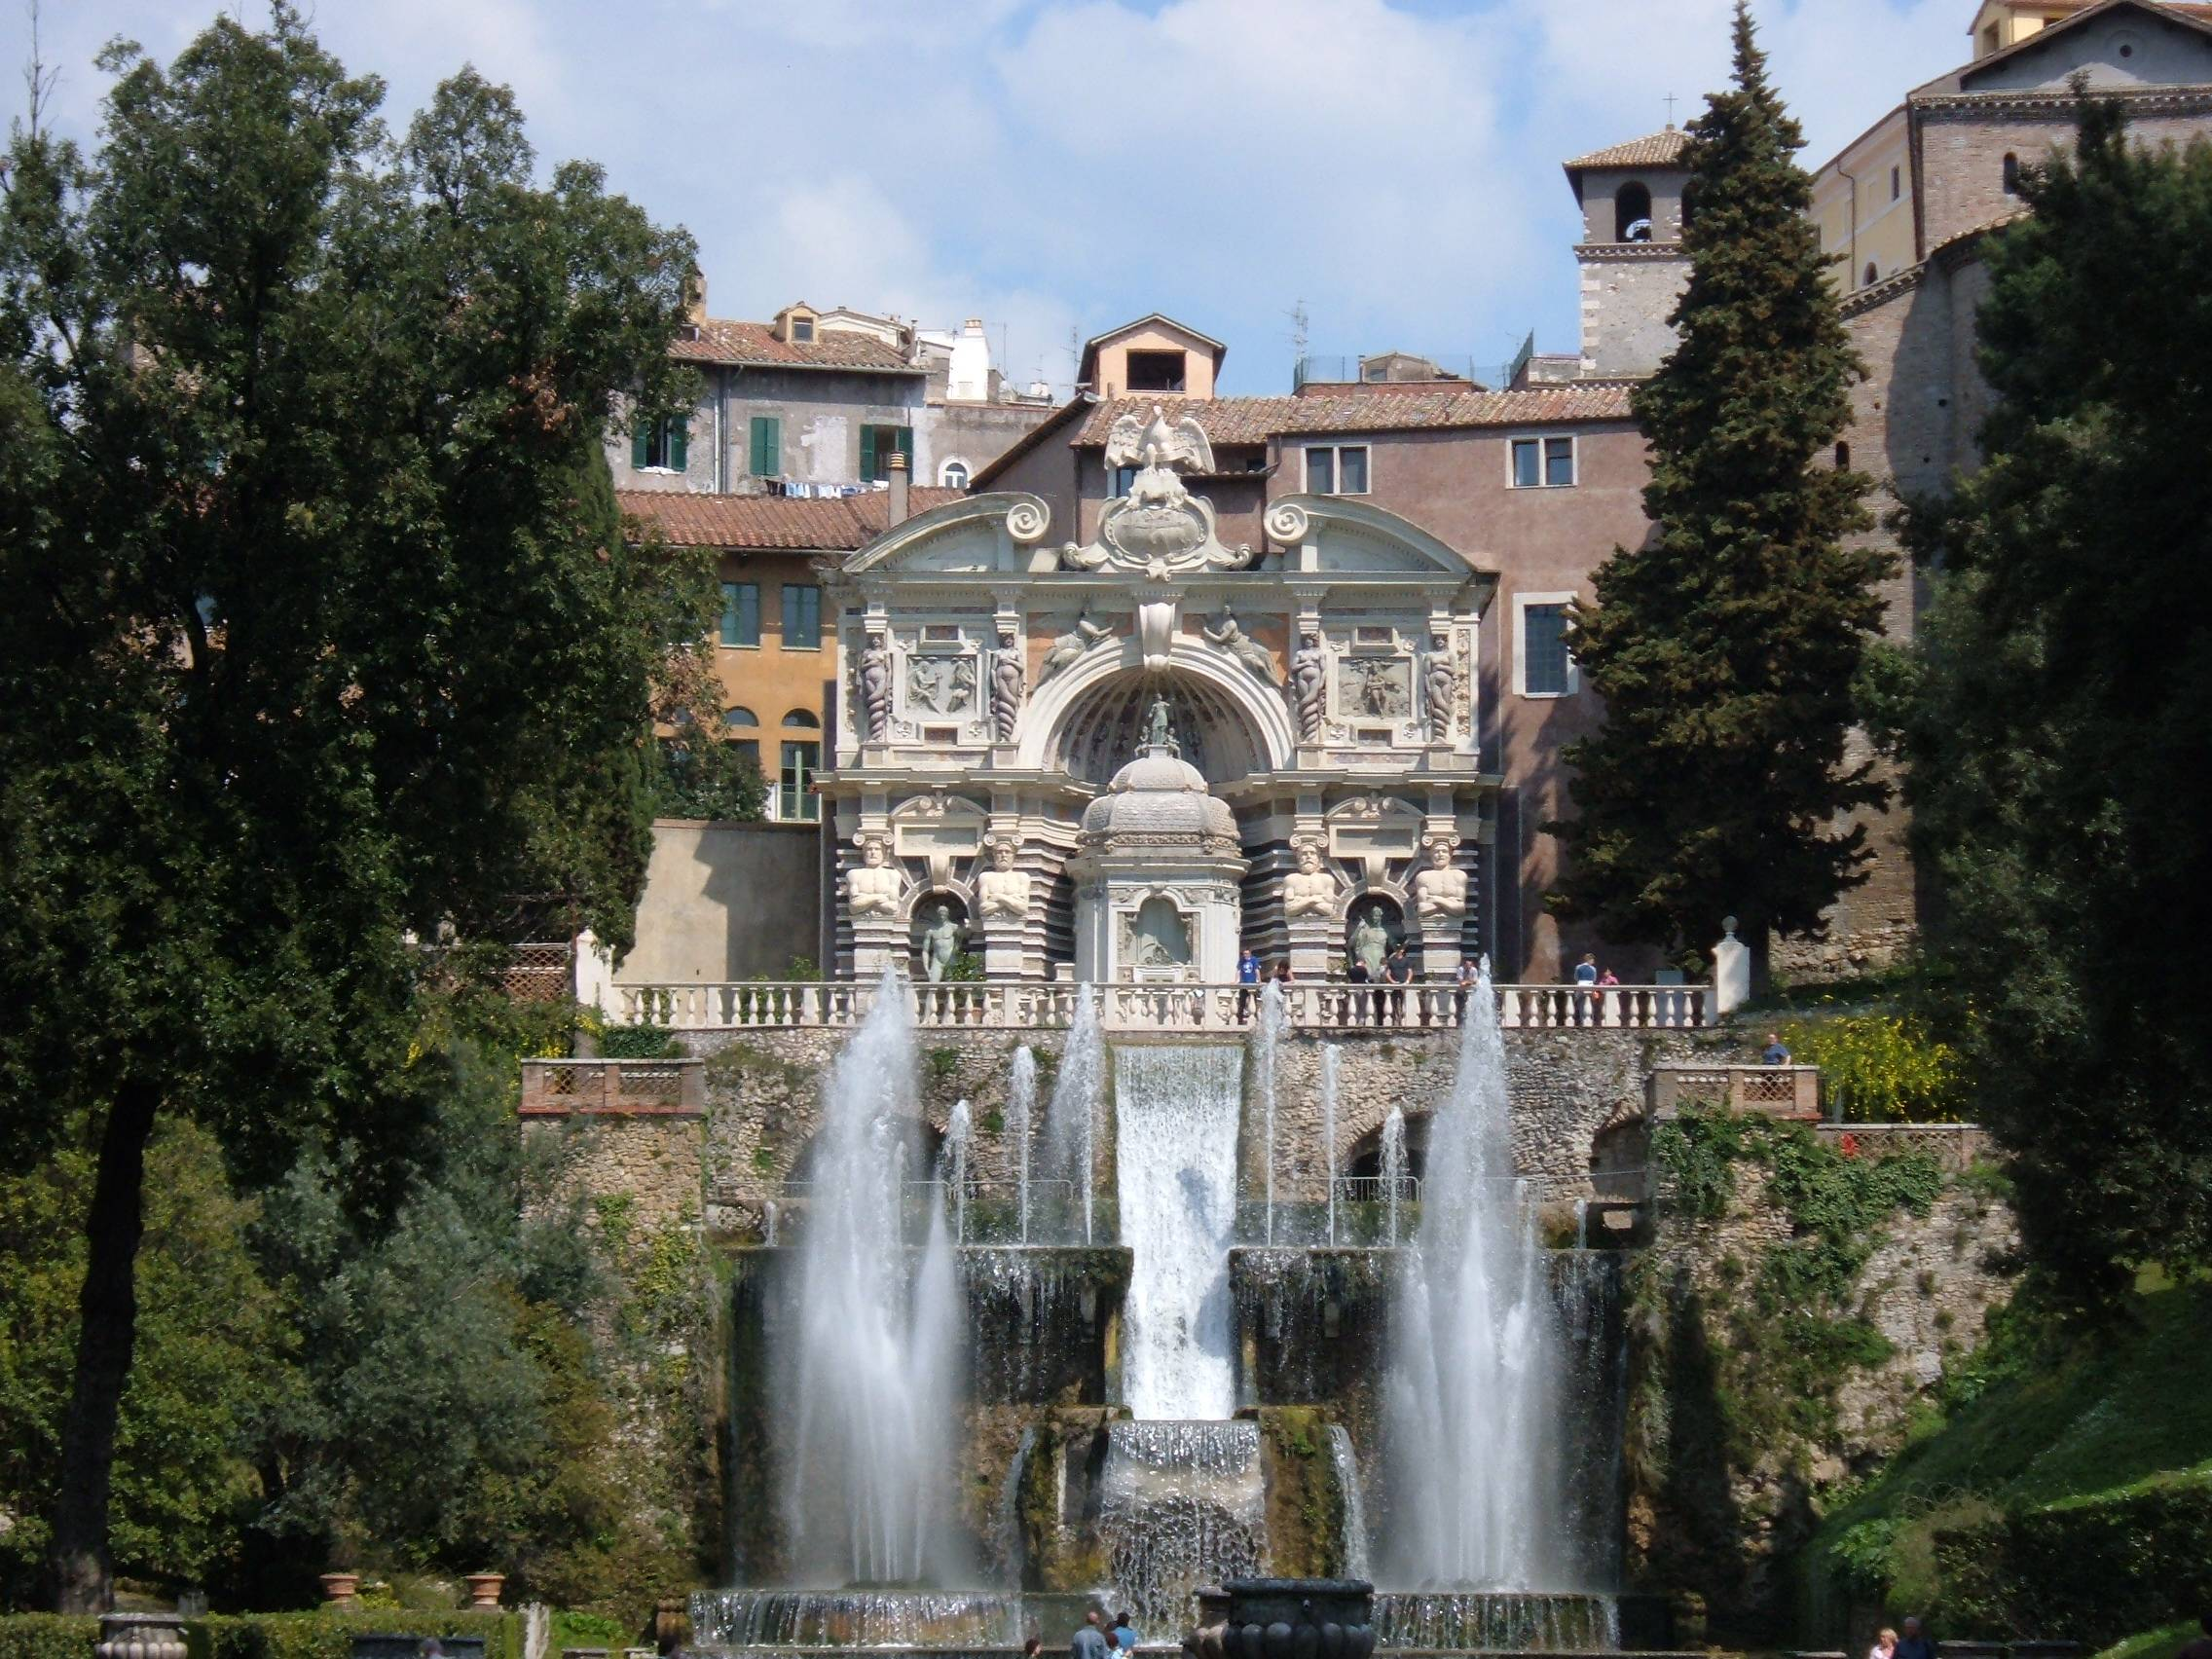 tivoli dating Day trips in rome: check out 1045 reviews and photos of viator's tivoli day trip from rome: hadrian's villa and villa d'este  giuseppe is a tivoli resident,.